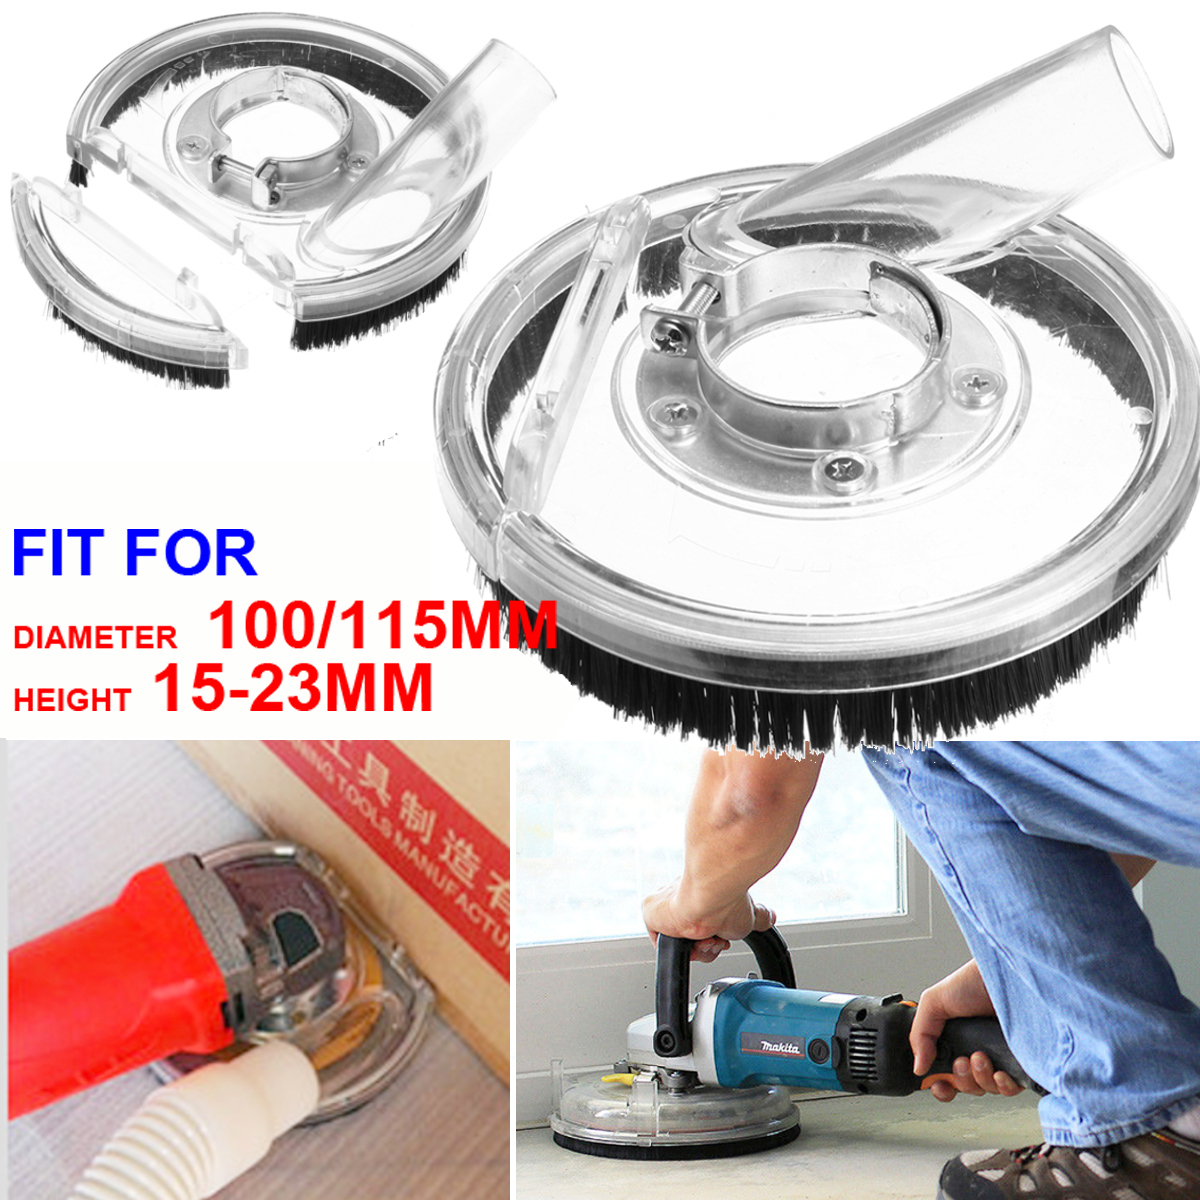 Dust Shroud Kit Dry Grinding Dust Cover For Angle Grinder 100/115mm Hand Grinder Power Tool Accessories Clear Vacuum Dust Cover